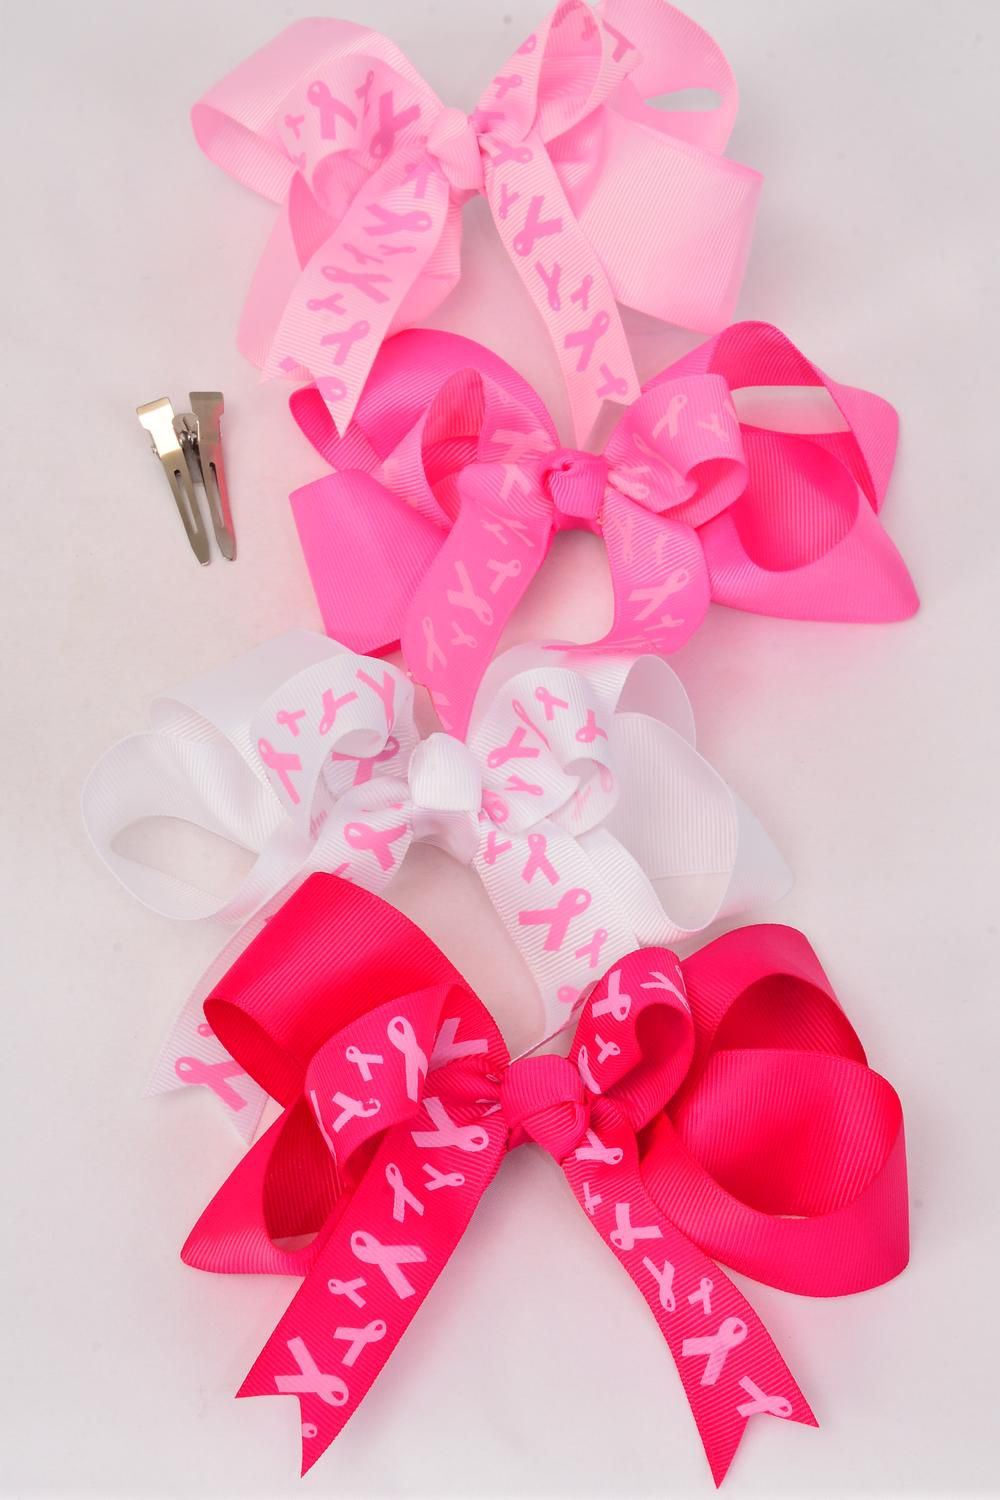 "Hair Bow Jumbo Pink Ribbon Alligator Clip Double Layer Grosgrain Bow-tie/DZ **Alligator Clip** Size-6""x 5"" Wide,3 of each Color Asst,Clip Strip & UPC Code"